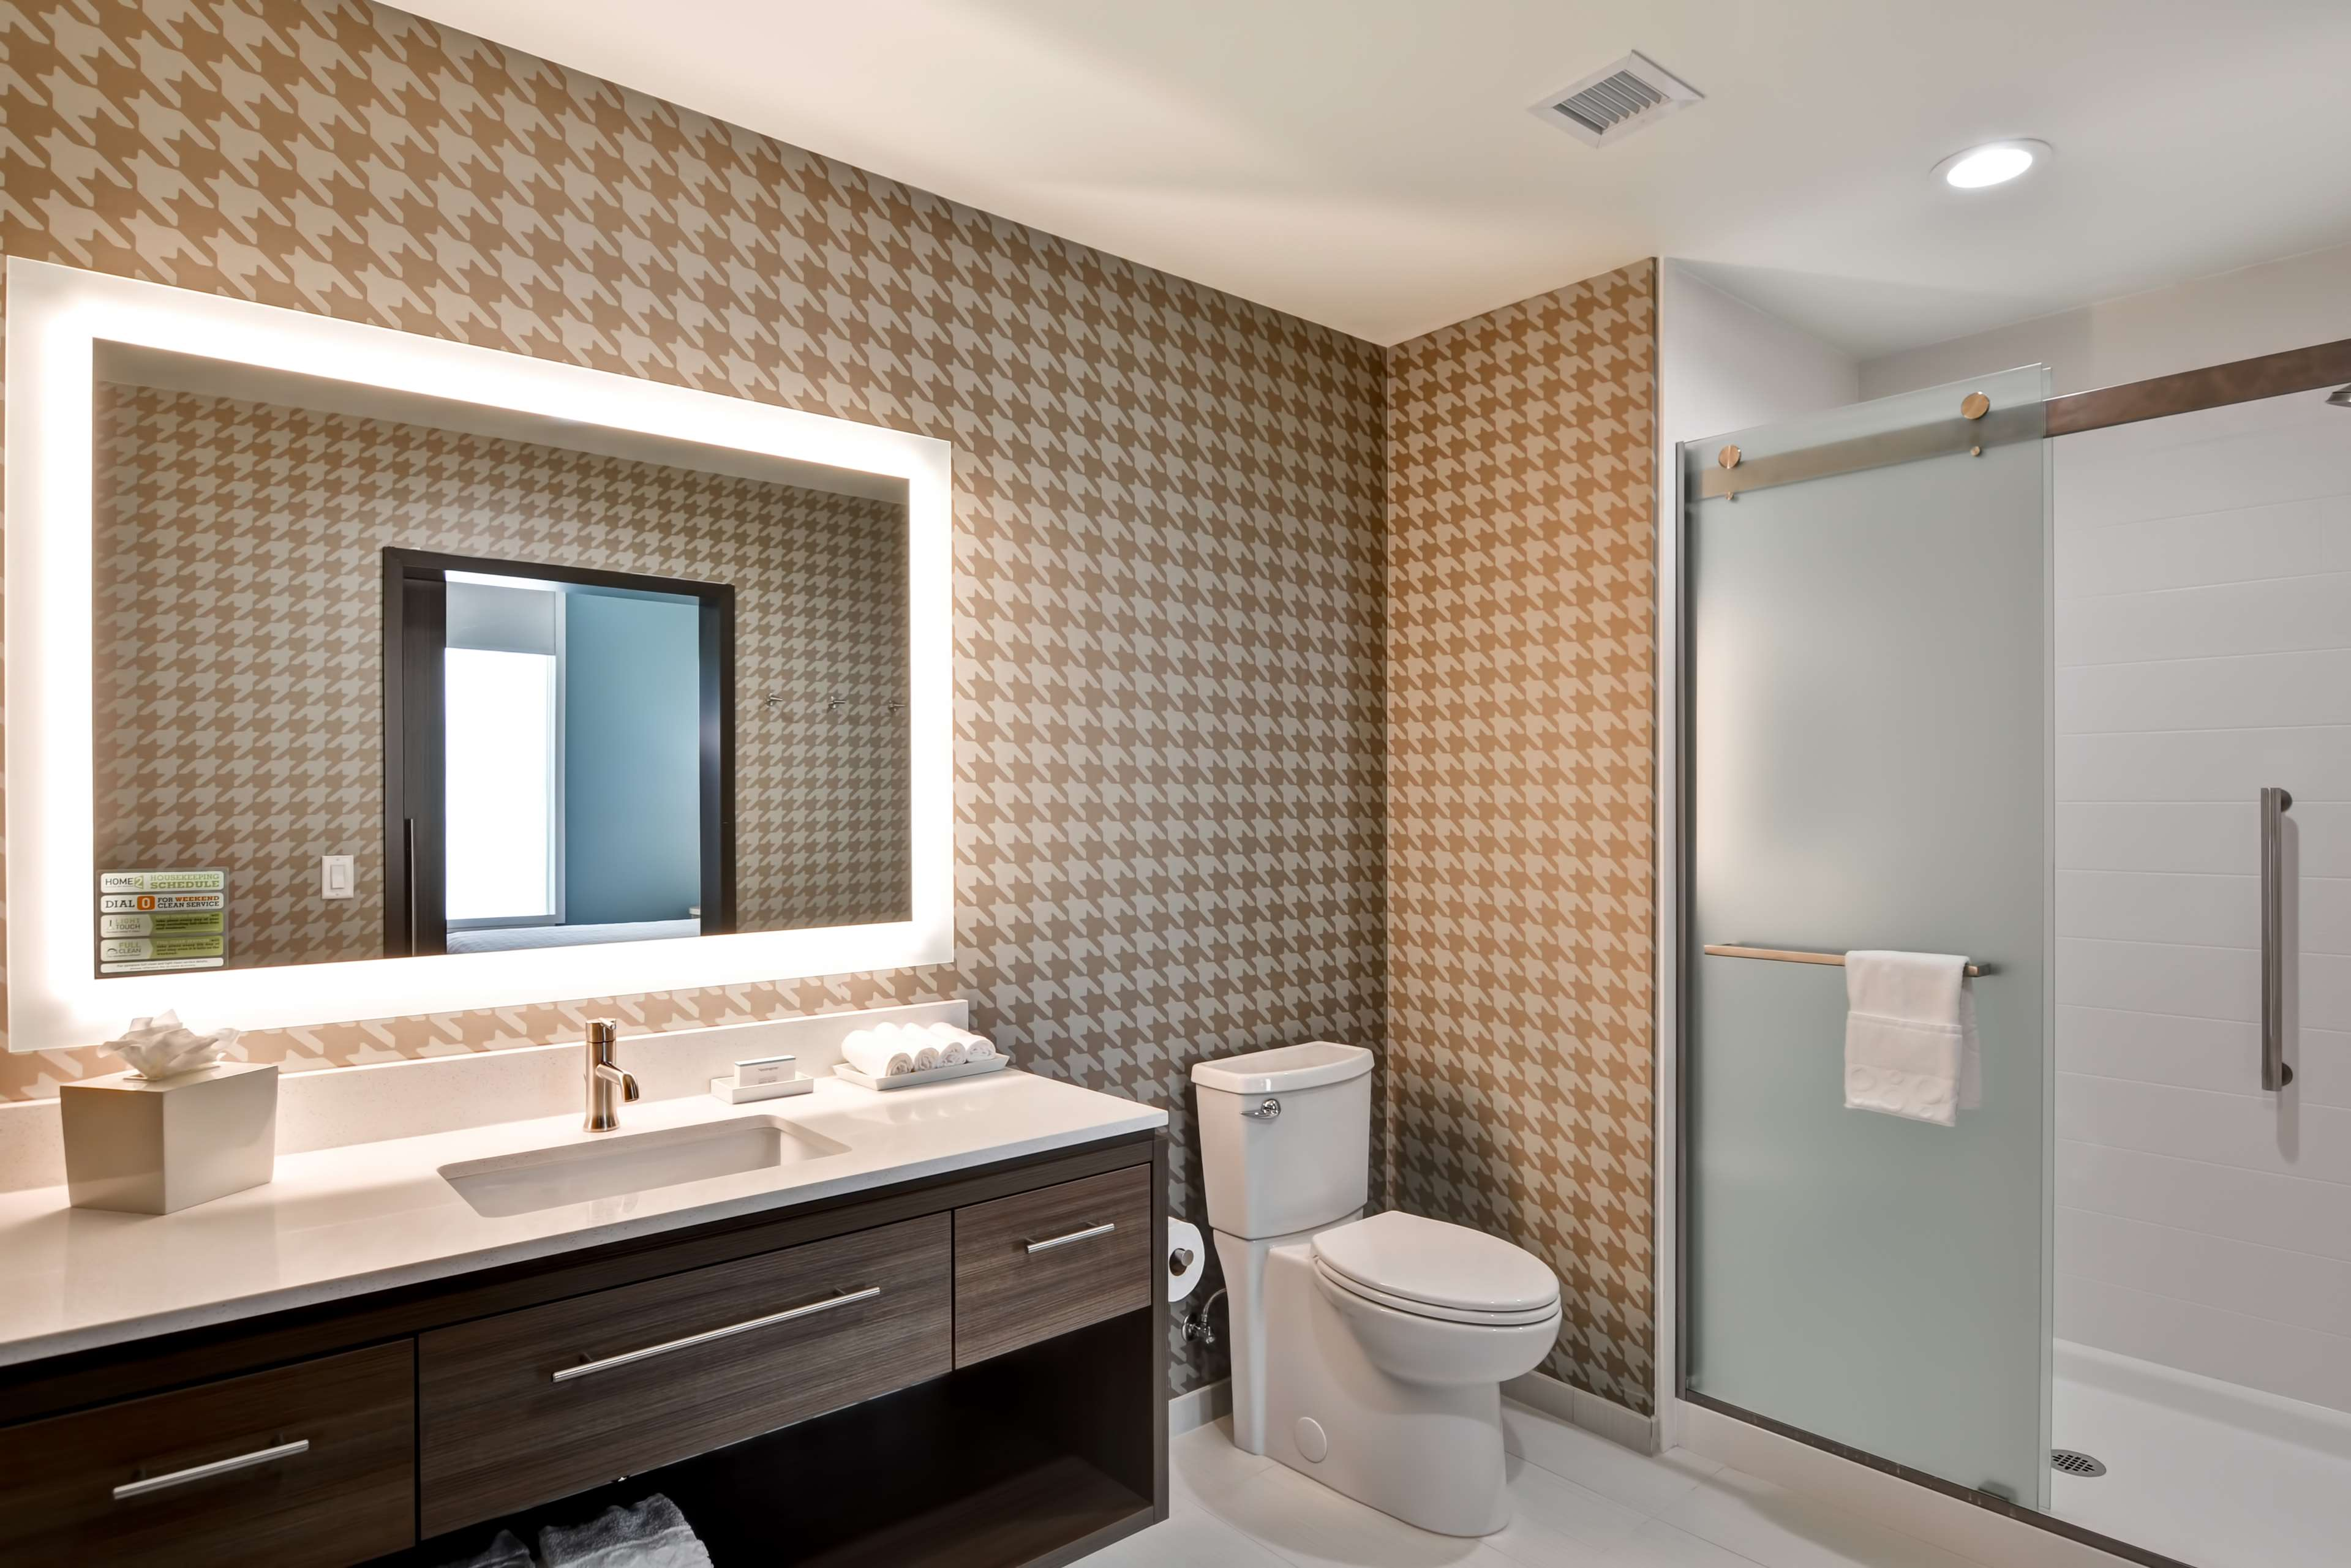 Home2 Suites by Hilton OKC Midwest City Tinker AFB image 23